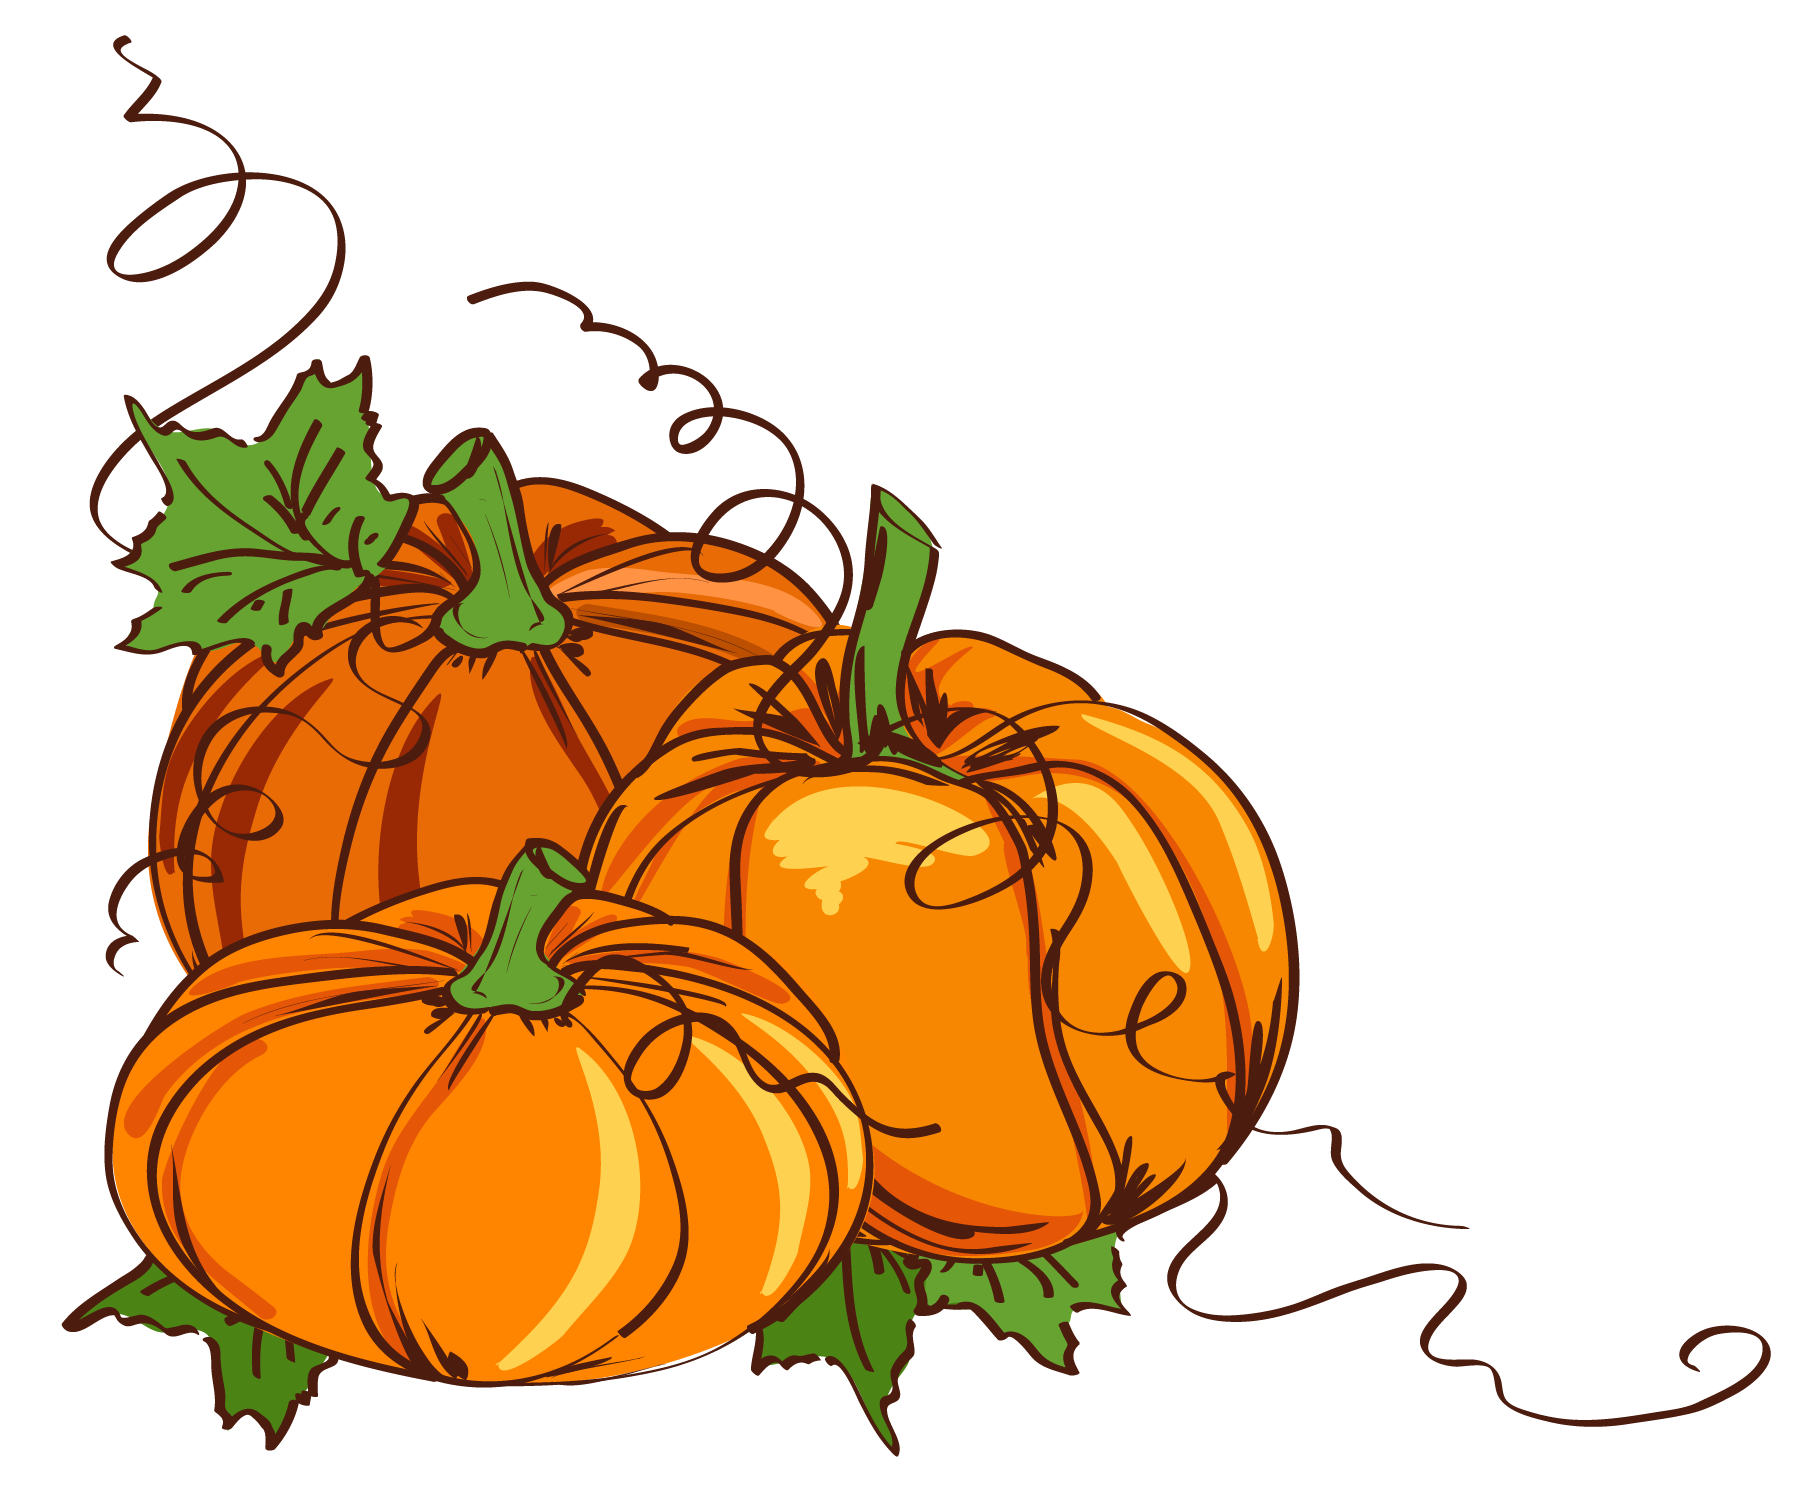 Antique pumpkin clipart free jpg stock Thanksgiving Pumpkin Clipart at GetDrawings.com | Free for personal ... jpg stock